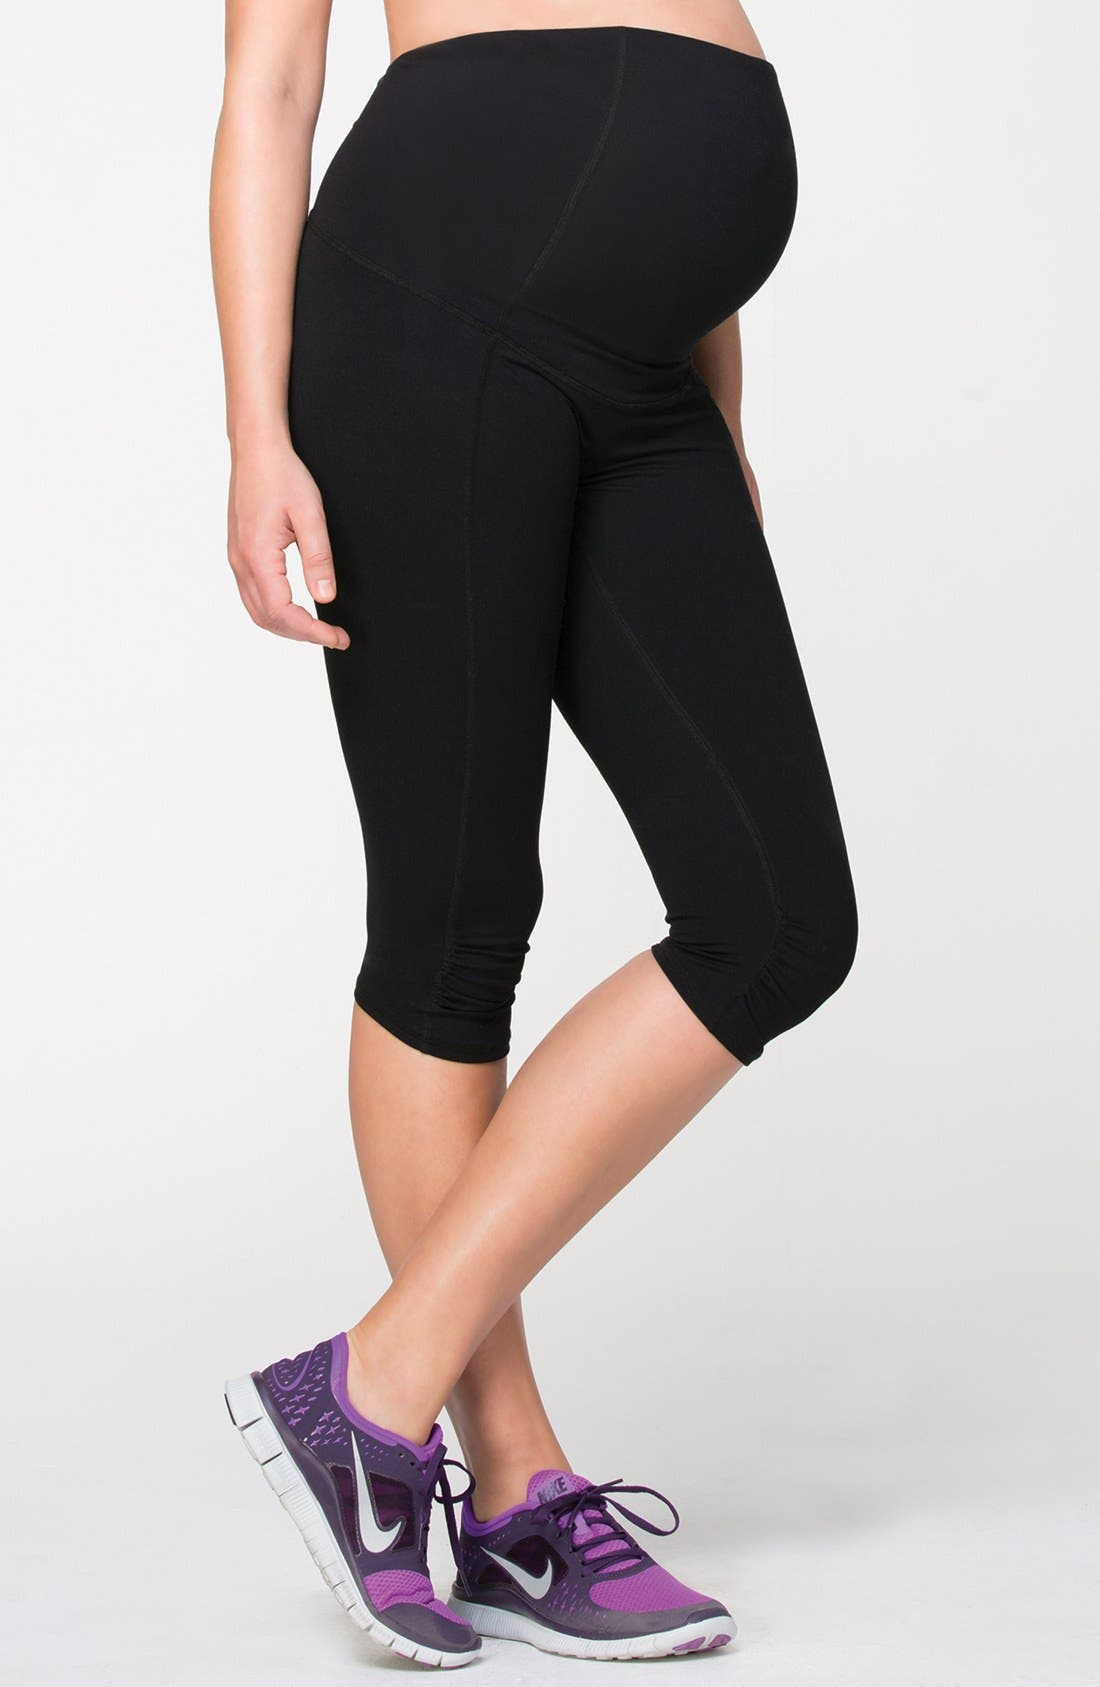 INGRID & ISABEL® Knee Length Active Maternity Pants